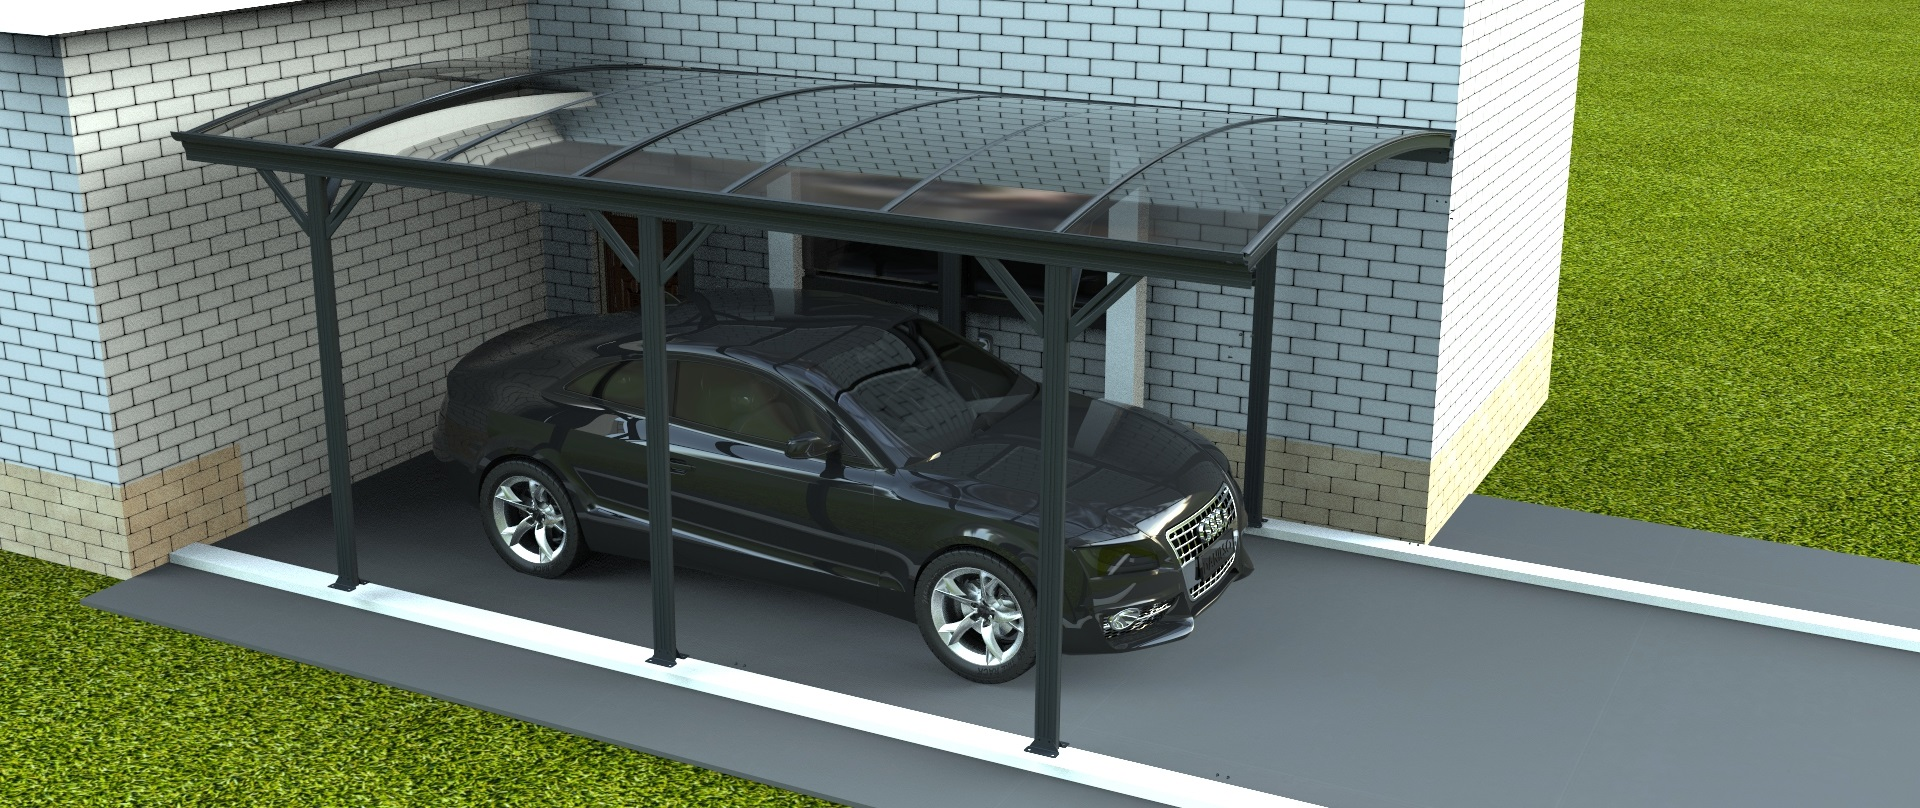 carport abri voiture 5x3 m anthracite bouvara cp7 abris. Black Bedroom Furniture Sets. Home Design Ideas